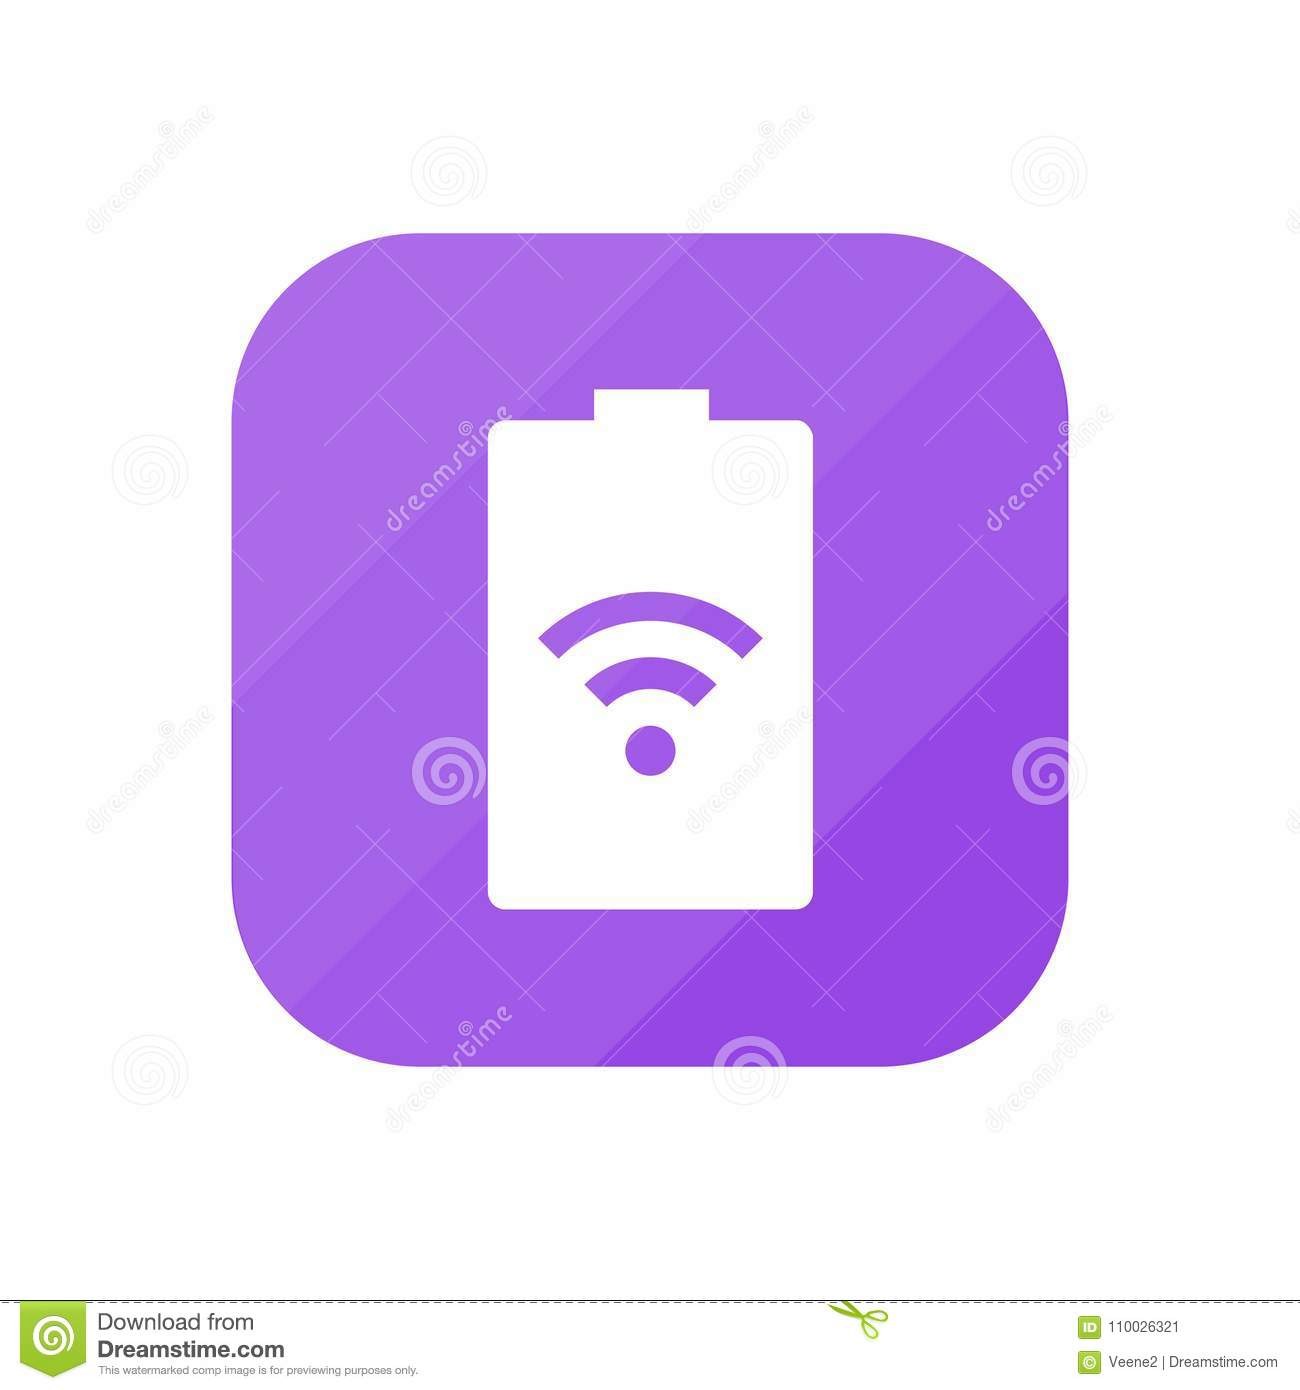 Wifi het Laden - App Pictogram